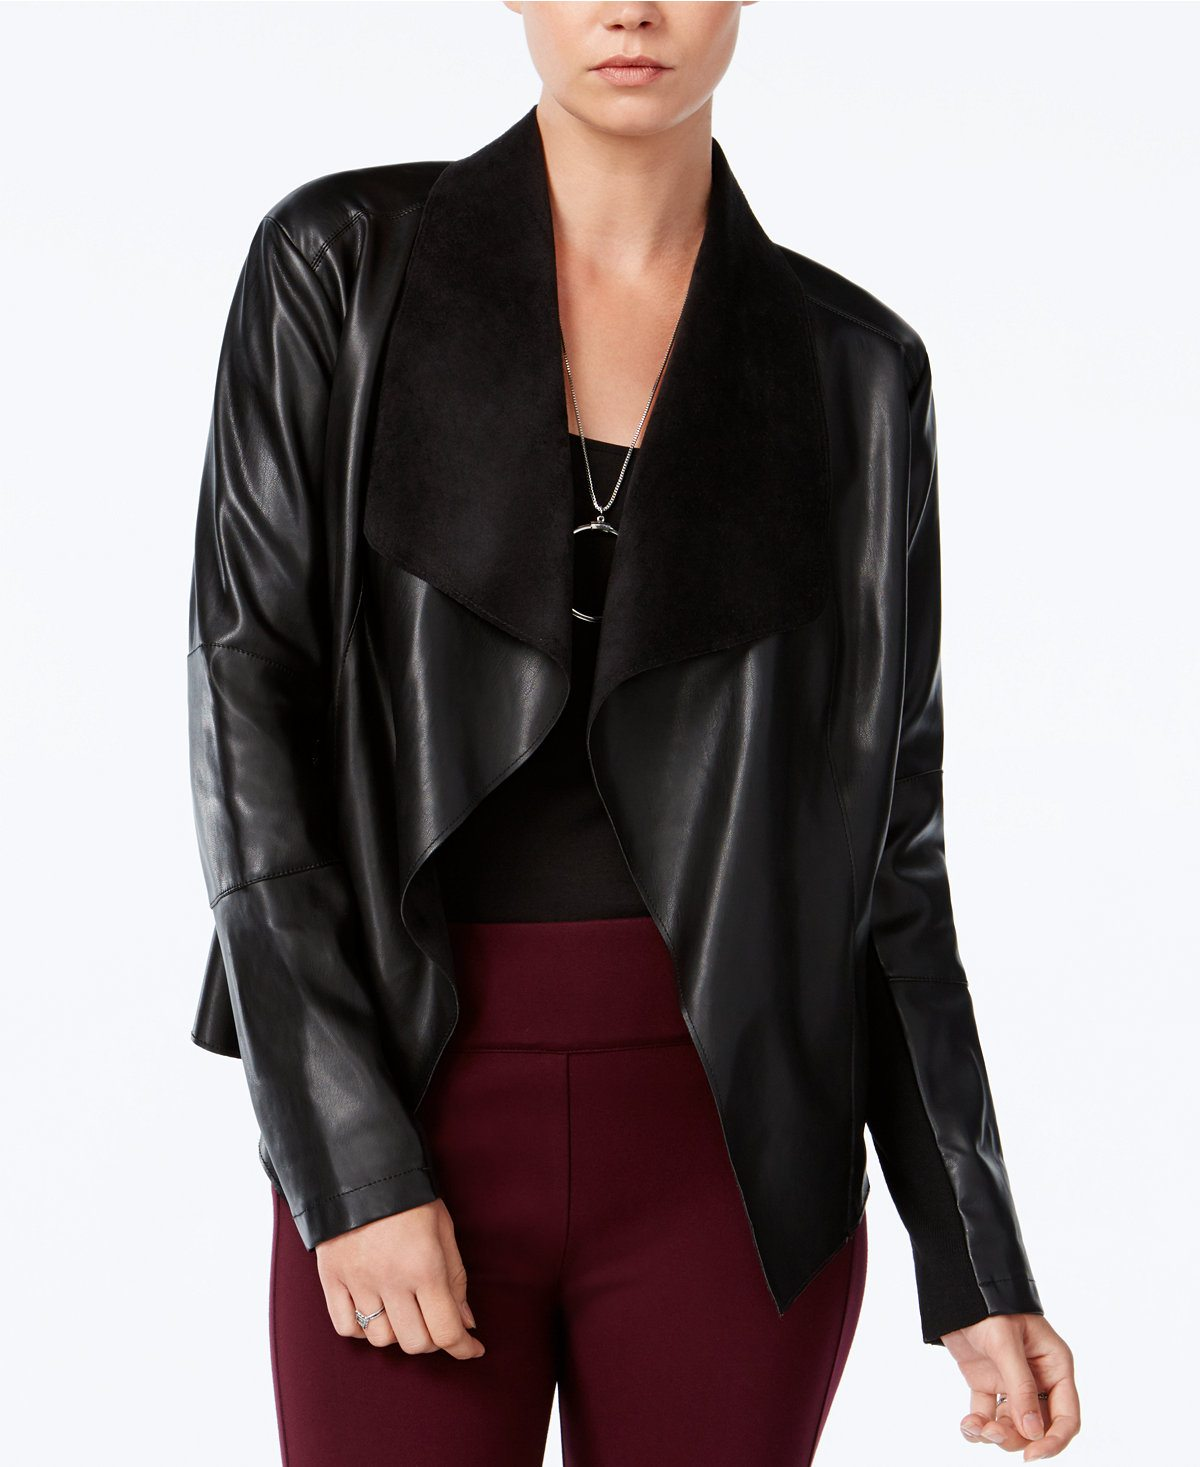 Macy's faux leather jacket